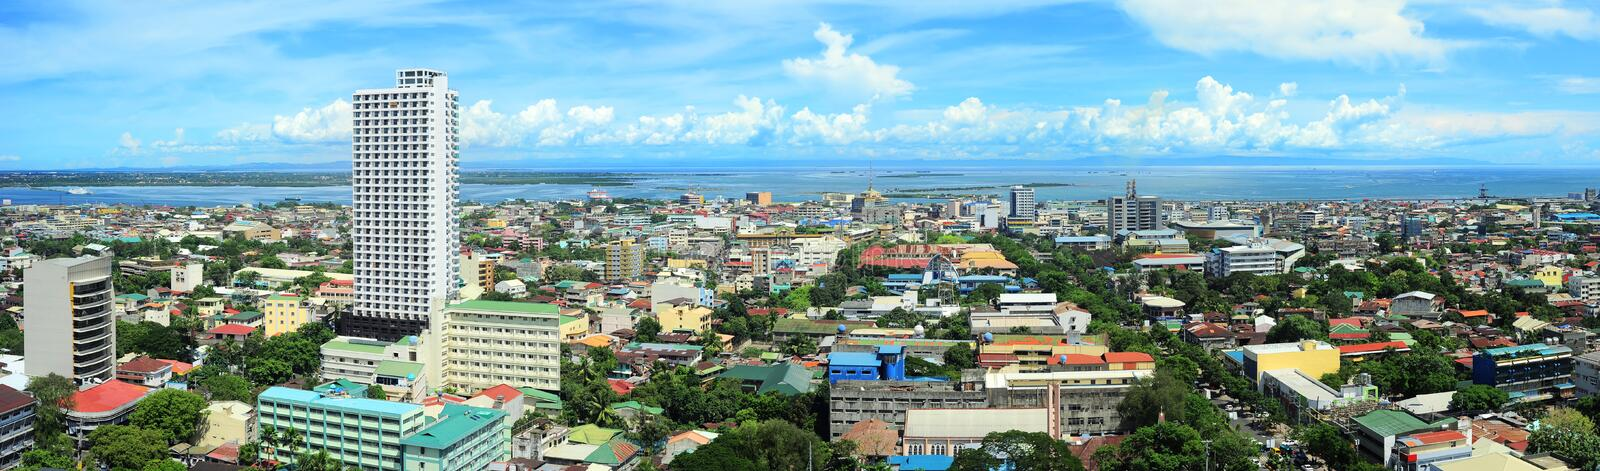 Metro Cebu. Panorama of Cebu city. Cebu is the Philippines second most significant metropolitan centre and main domestic shipping port stock image